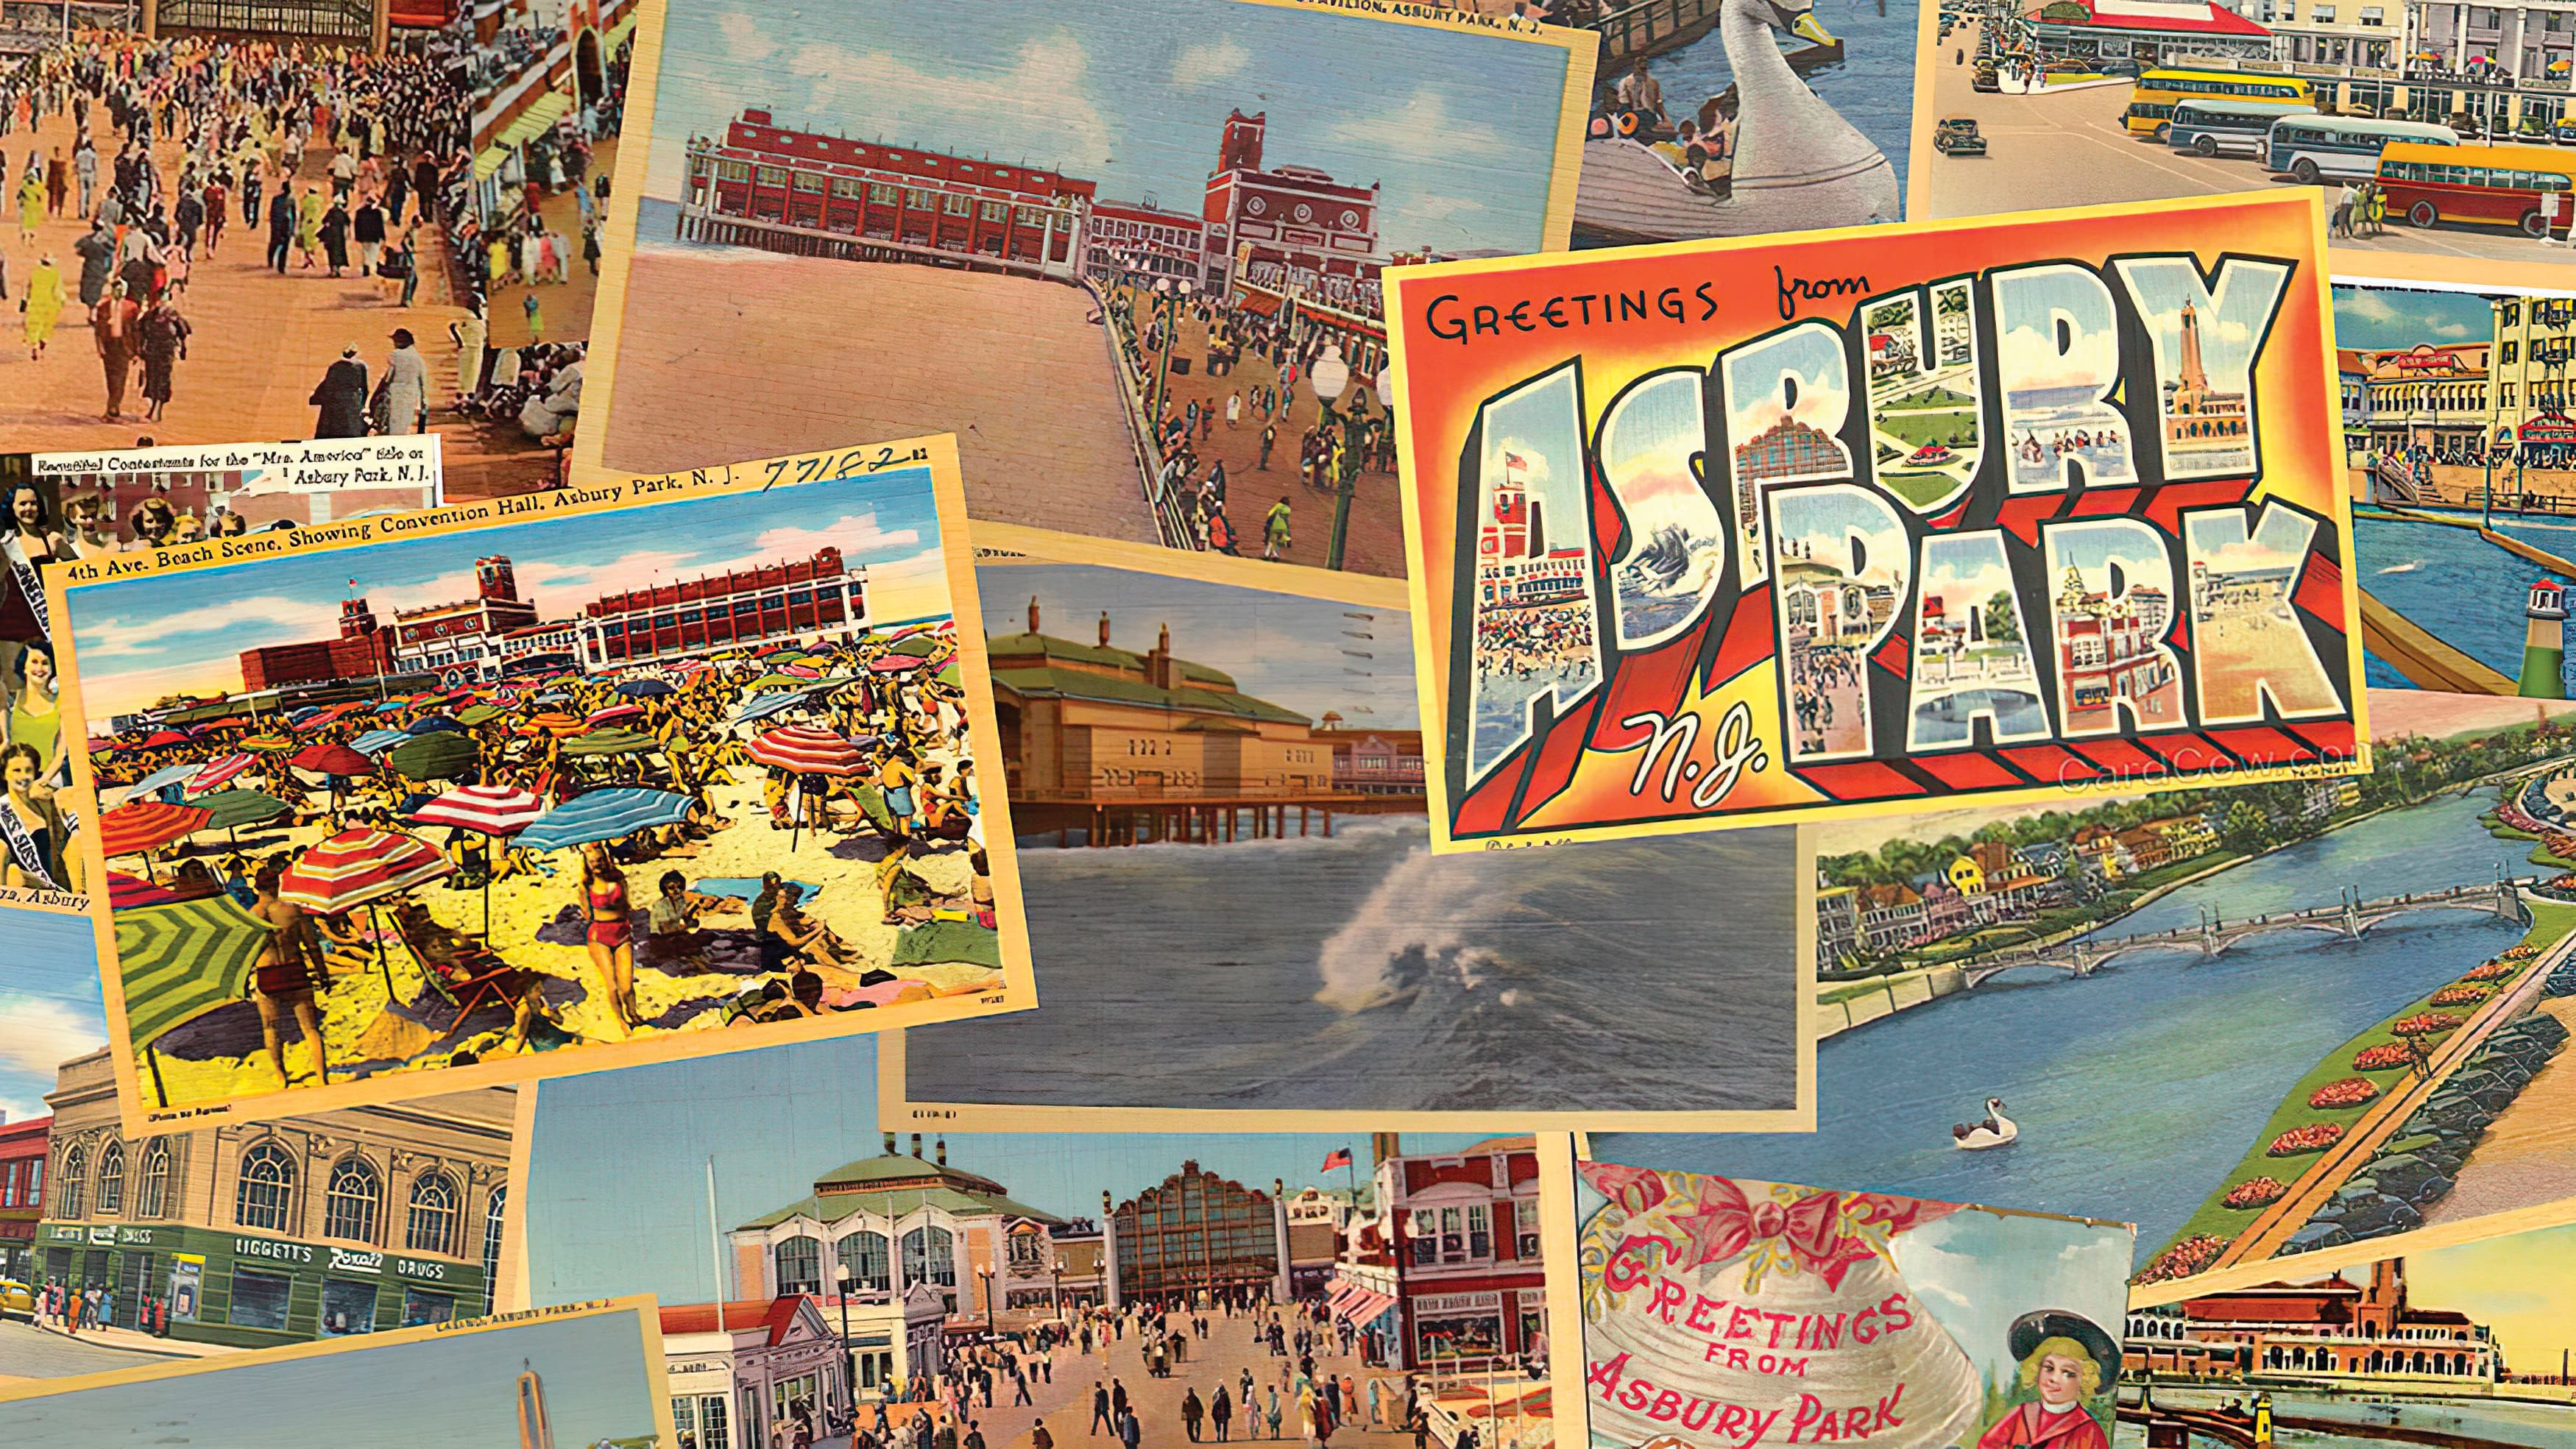 Asbury Park, New Jersey vintage-style postcard collection